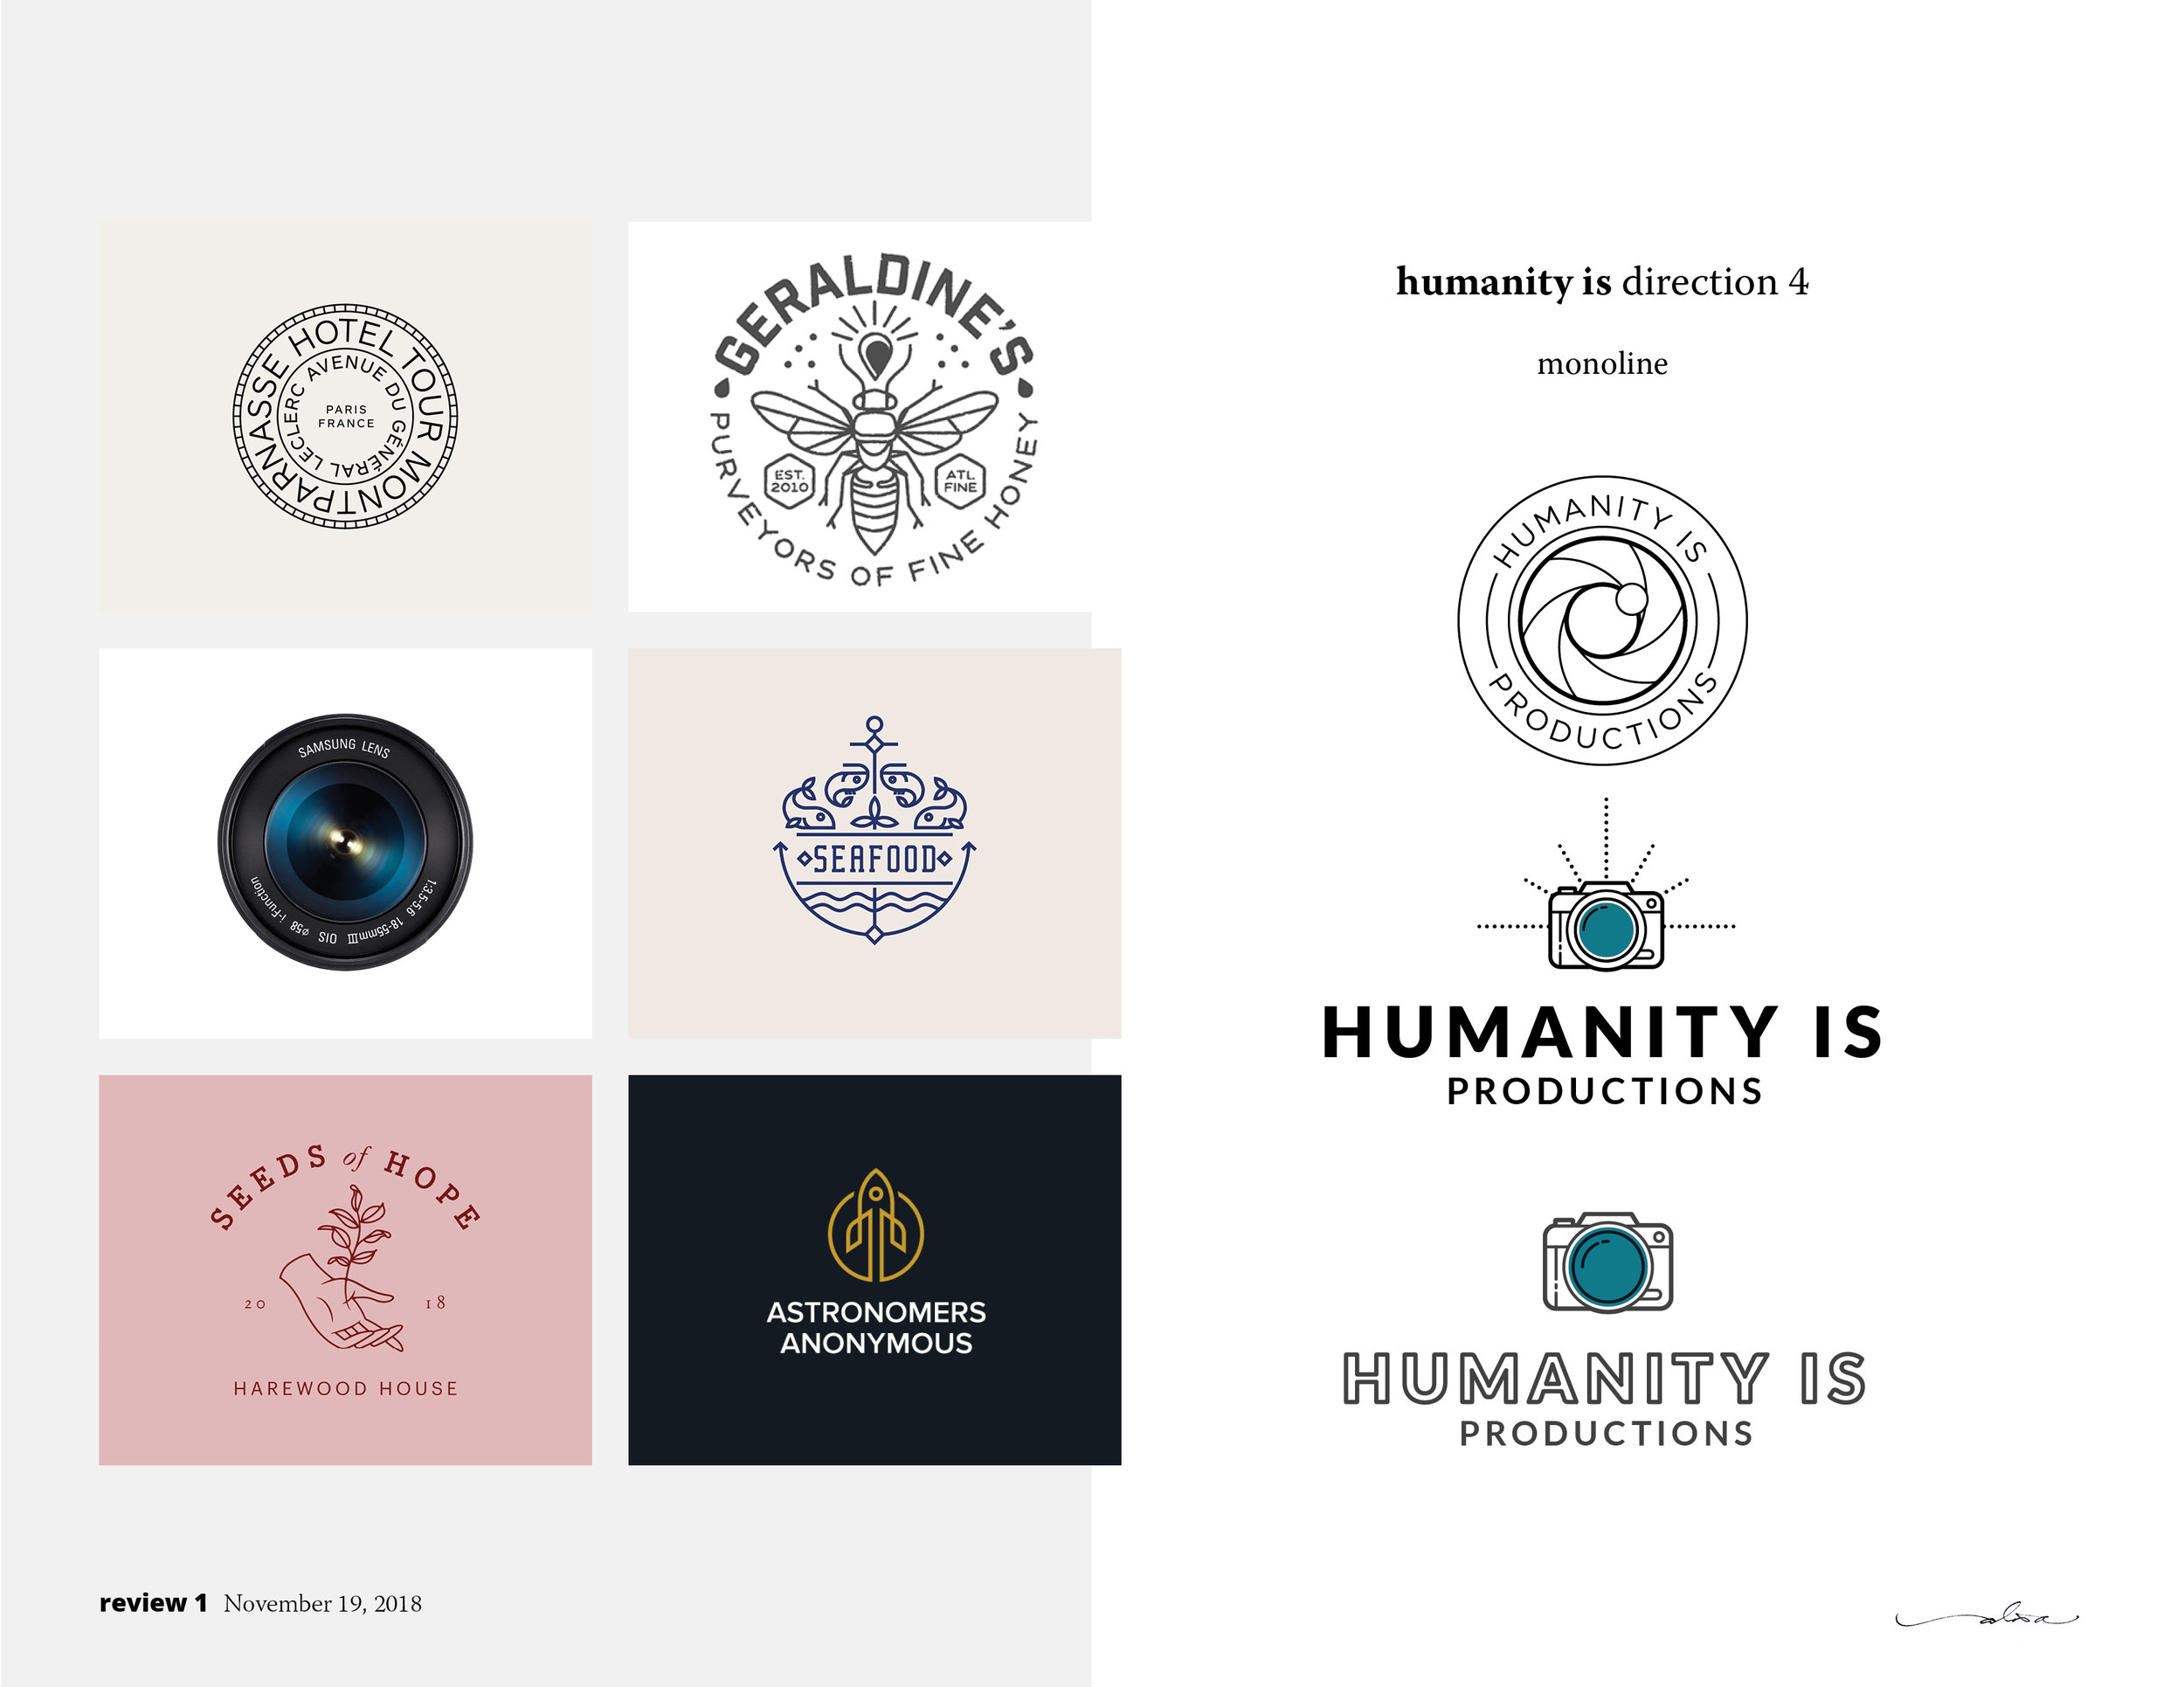 20181119_HumanityIs-Logo_Review1-v14.jpg